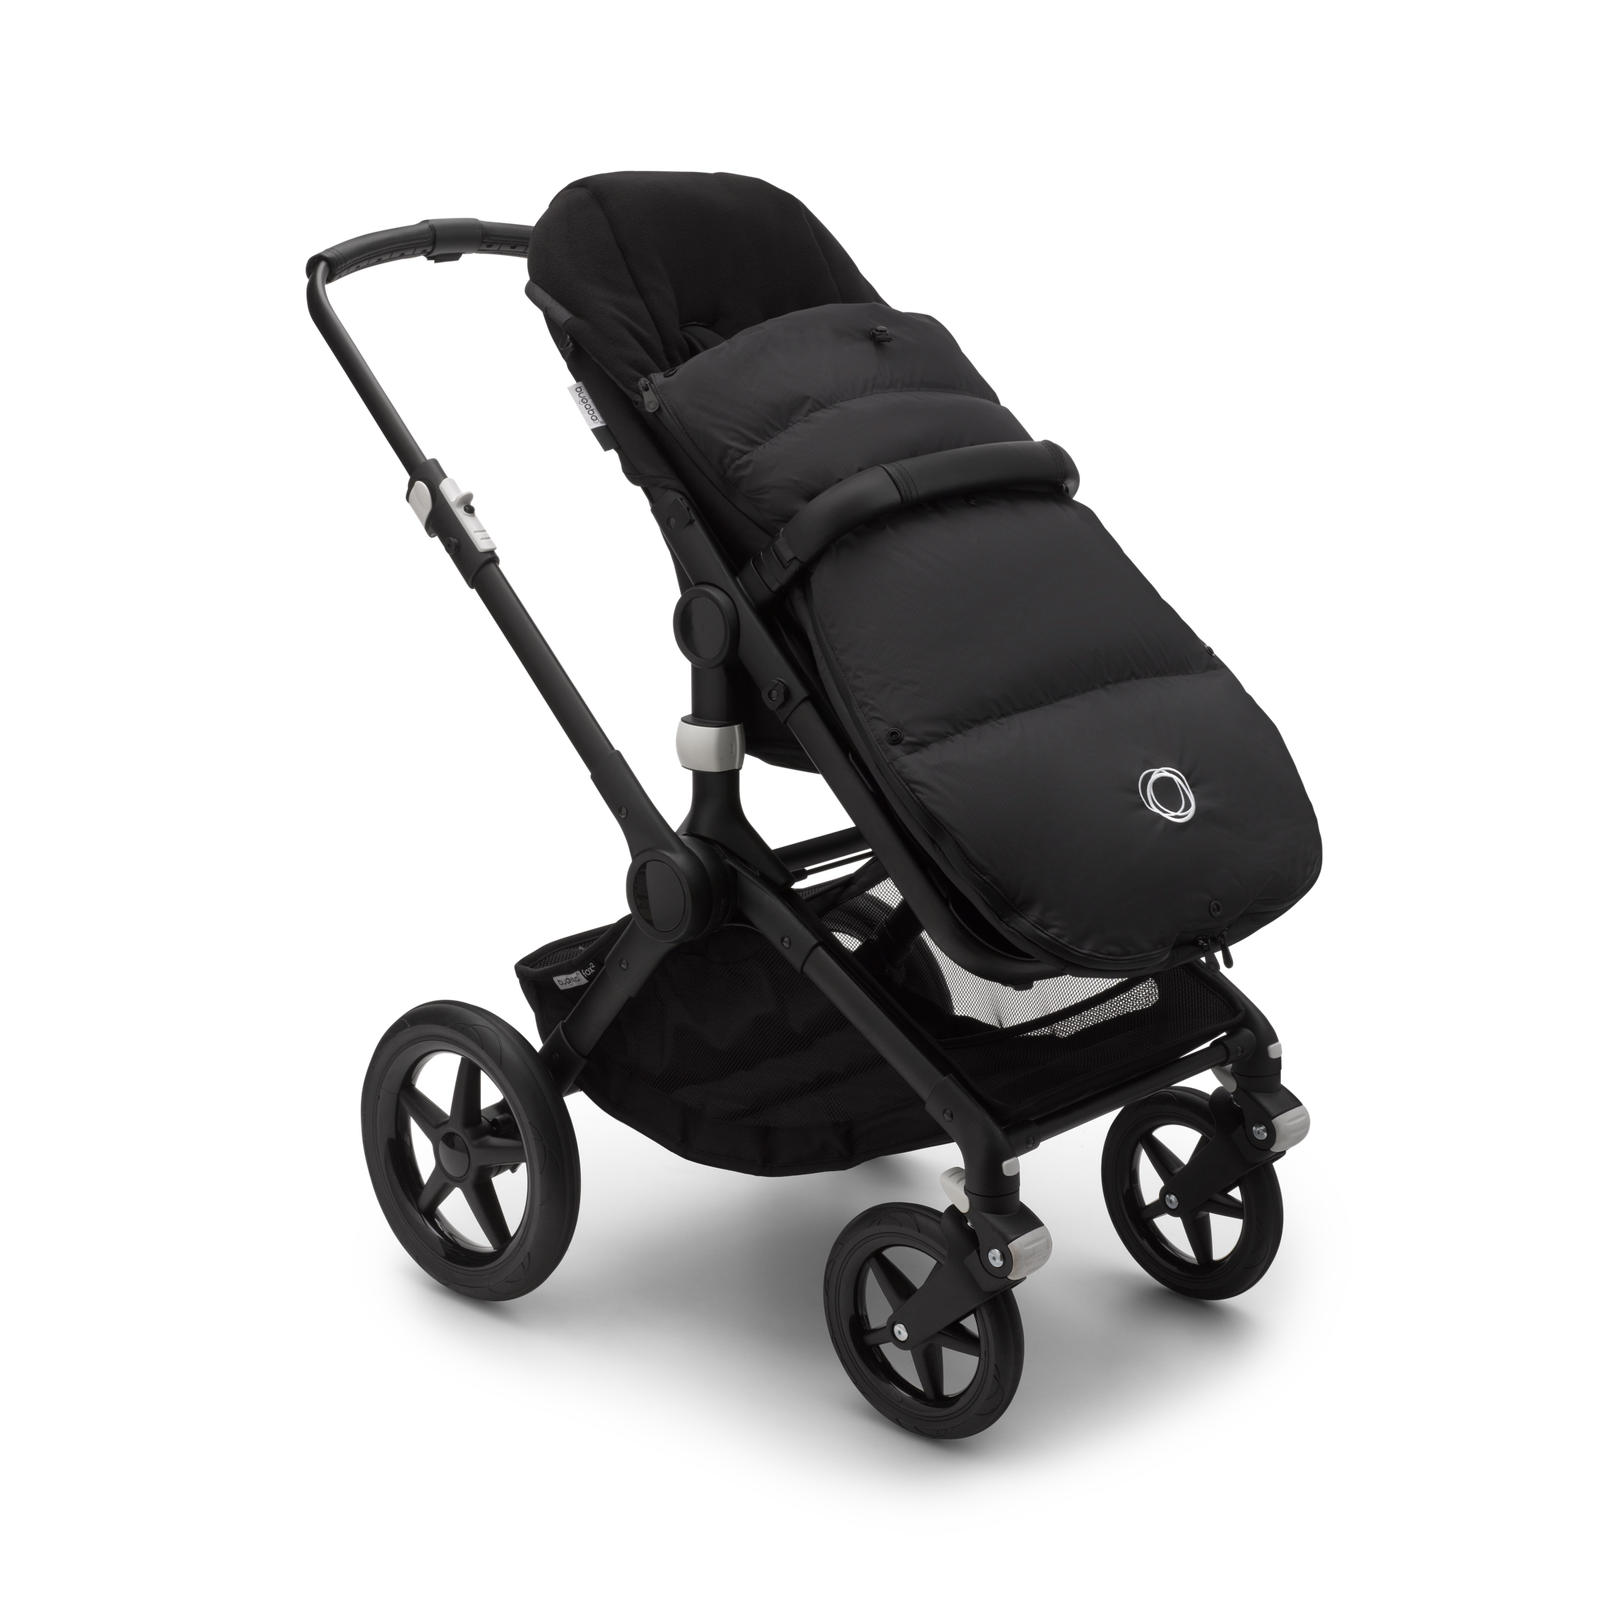 Bugaboo high performance footmuff